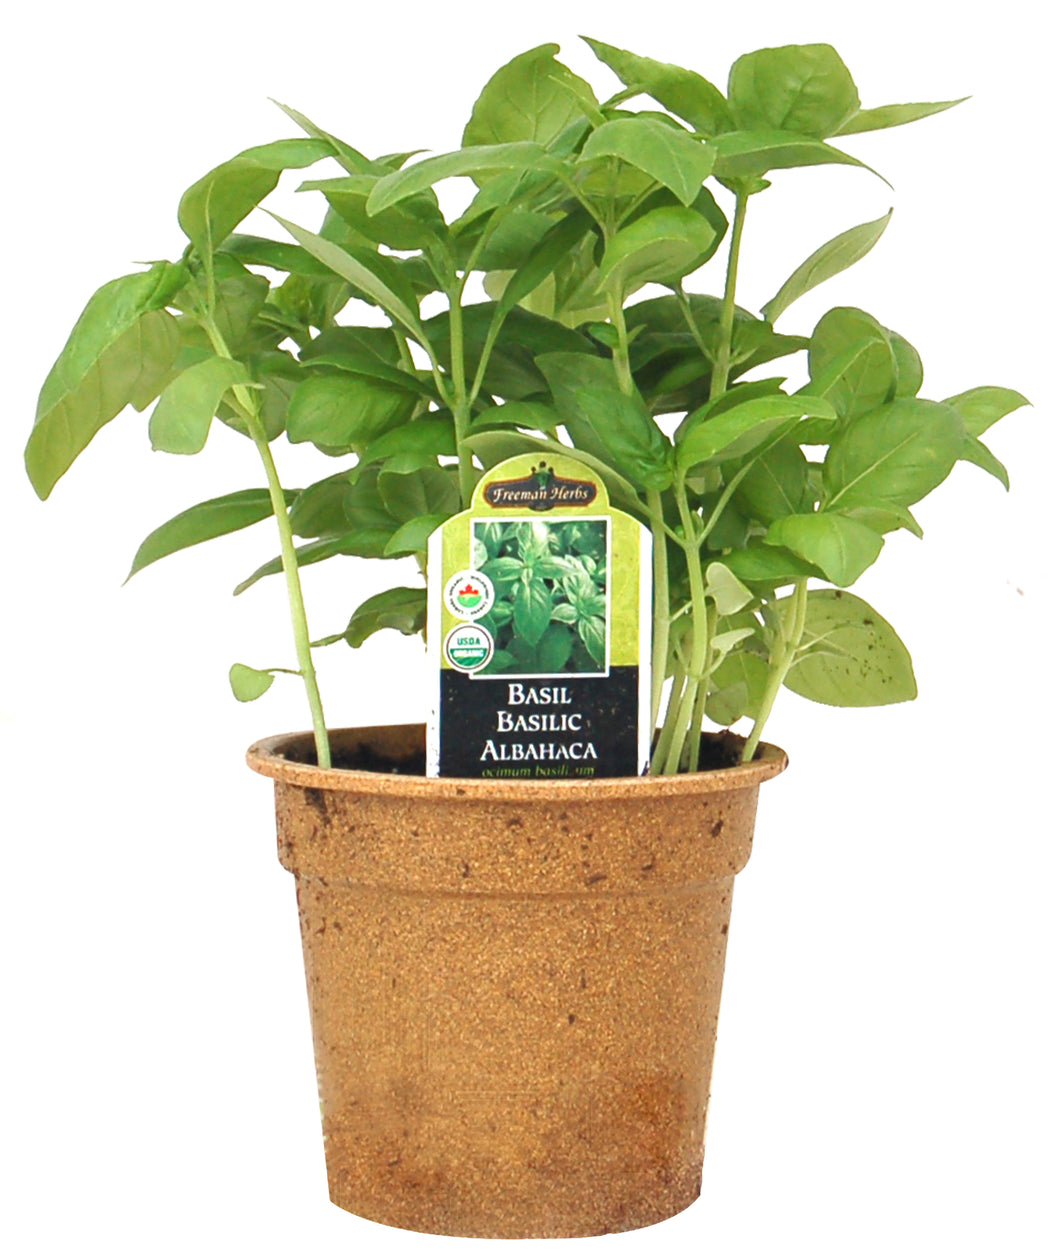 Basil - Genovese (Lettuce Leaf) AVAILABLE IN STORE ONLY